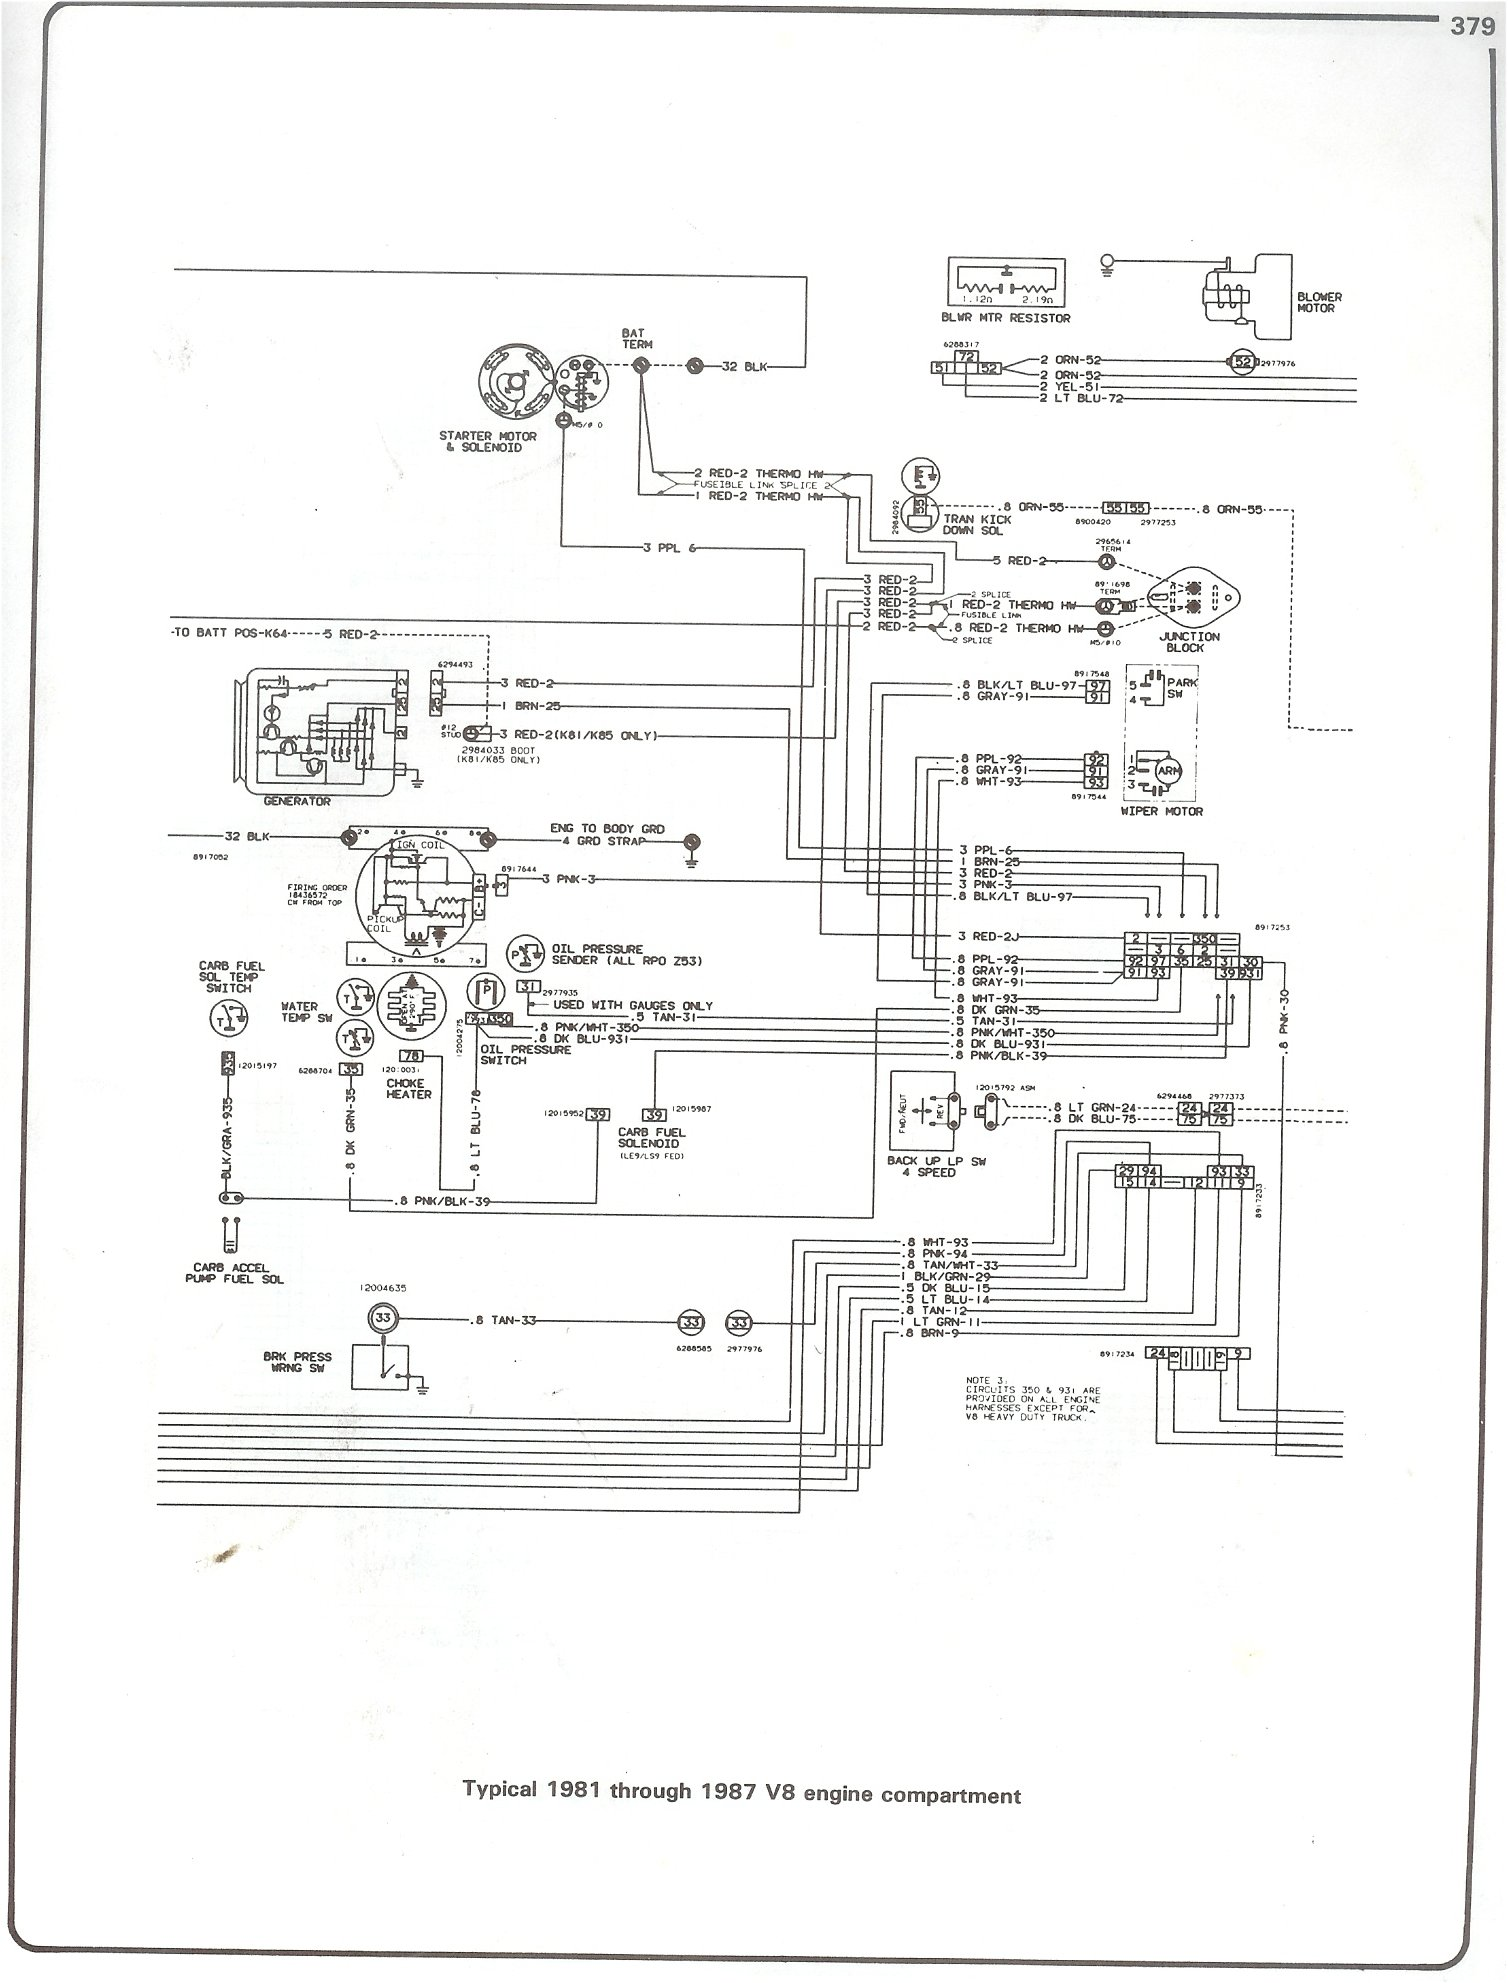 81 87_V8_engine 1983 chevy truck wiring diagram 1981 chevy truck wiring diagram 1978 GMC Sierra at gsmportal.co